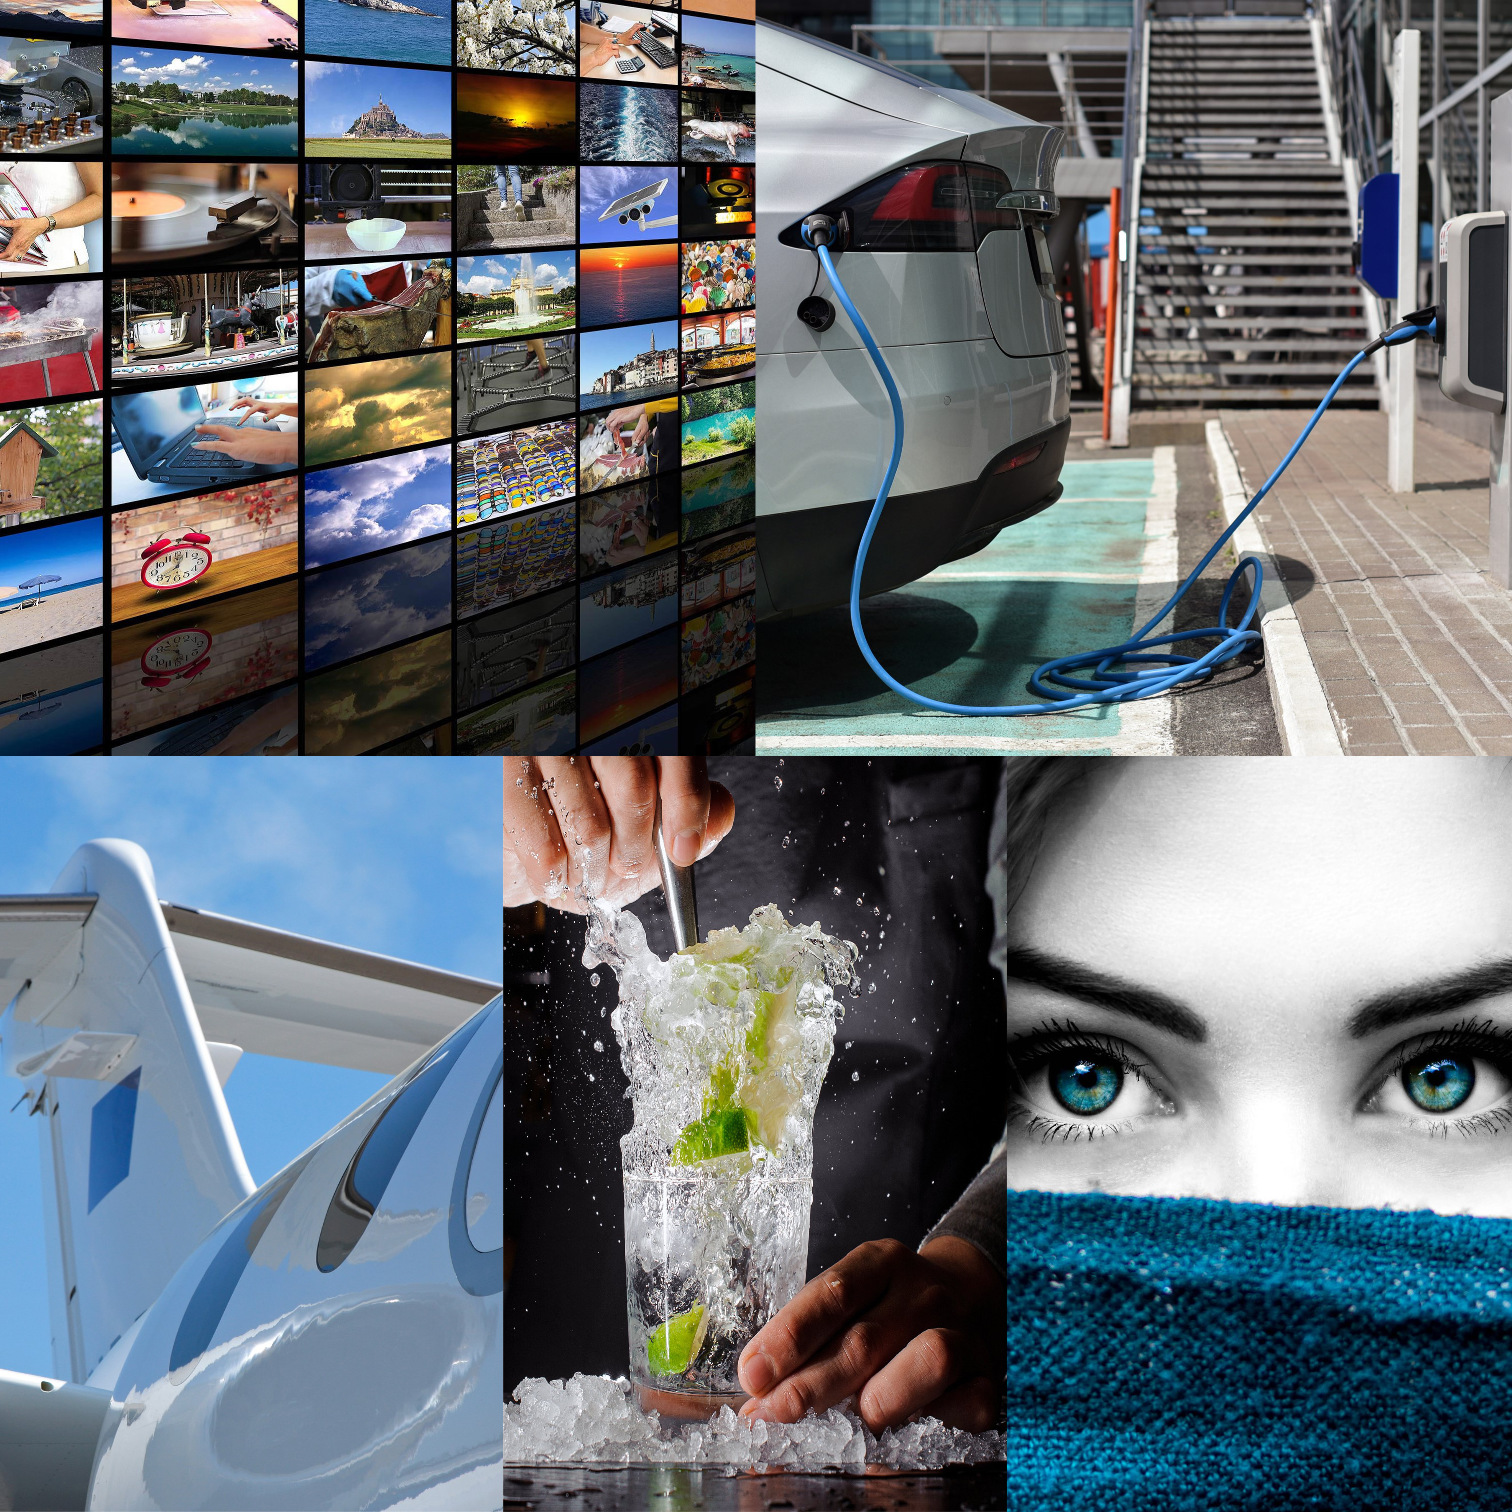 collage with video wall, electric car, jet, bartender, and woman